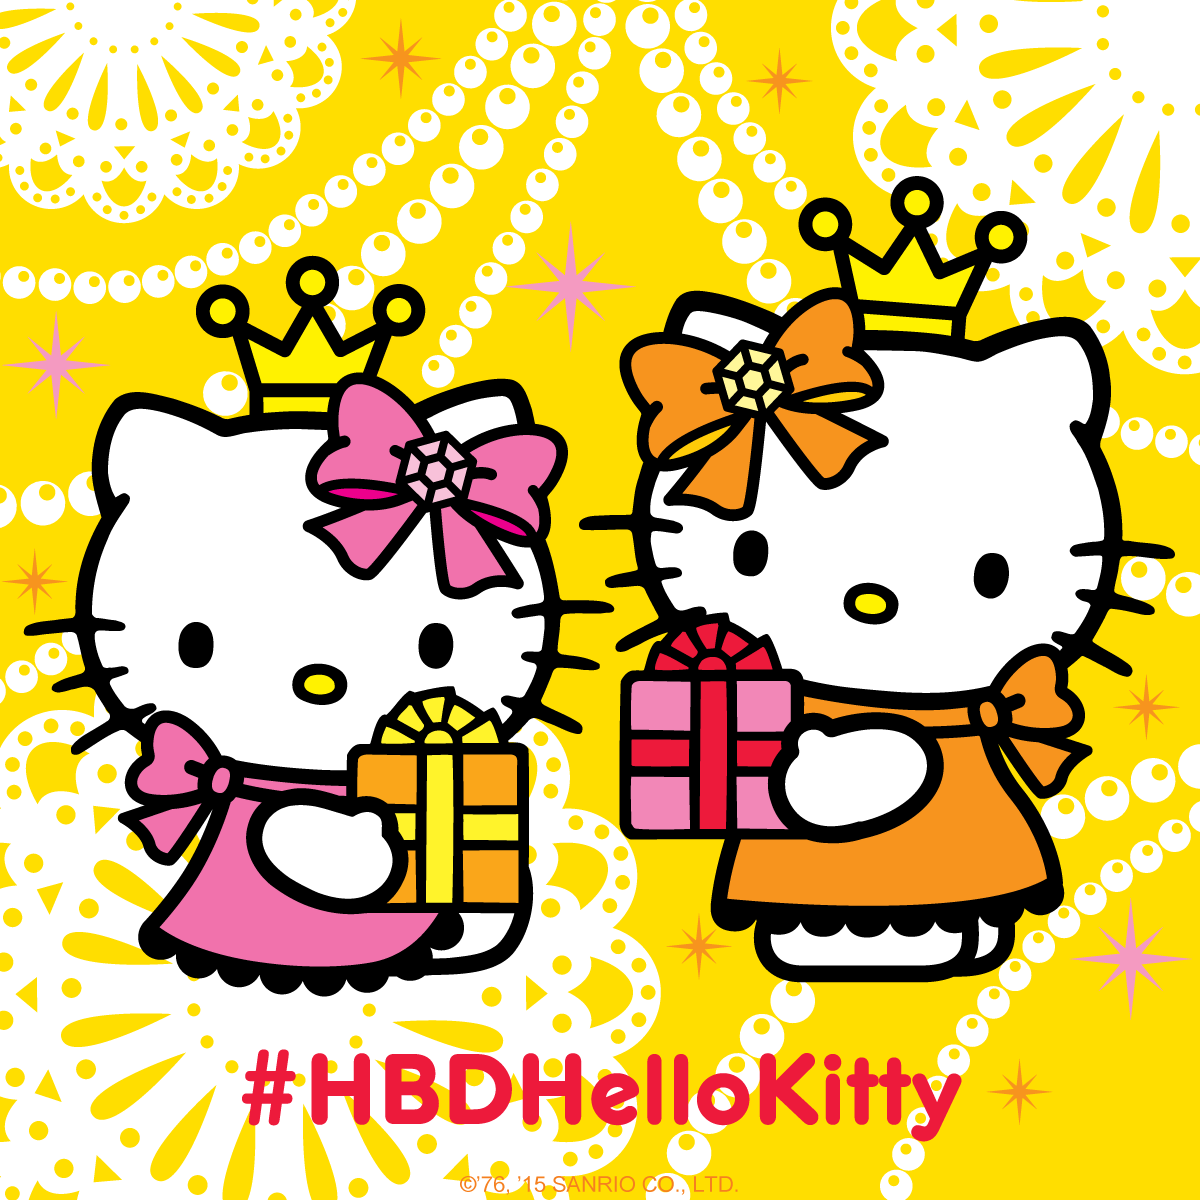 Sanrio On Twitter Send Birthday Wishes To Hellokitty And Her Twin